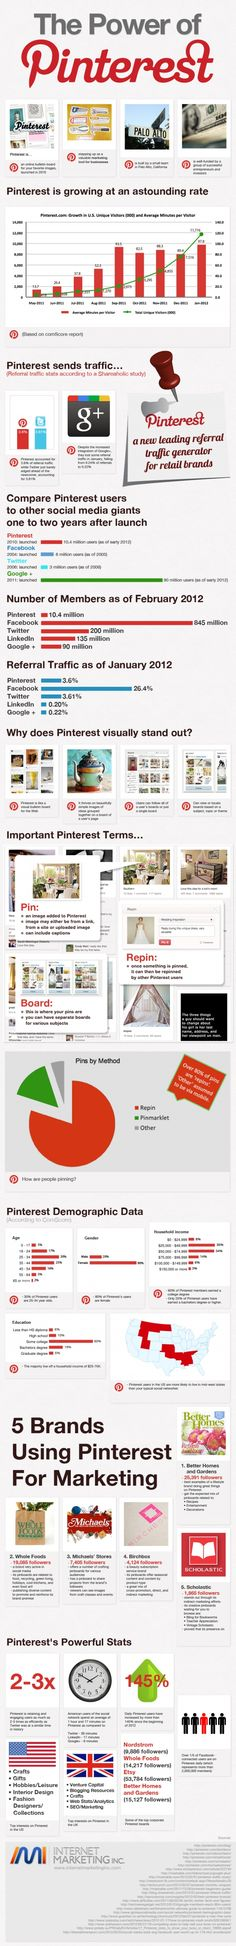 The Power of Pinterest from Tech Crunch